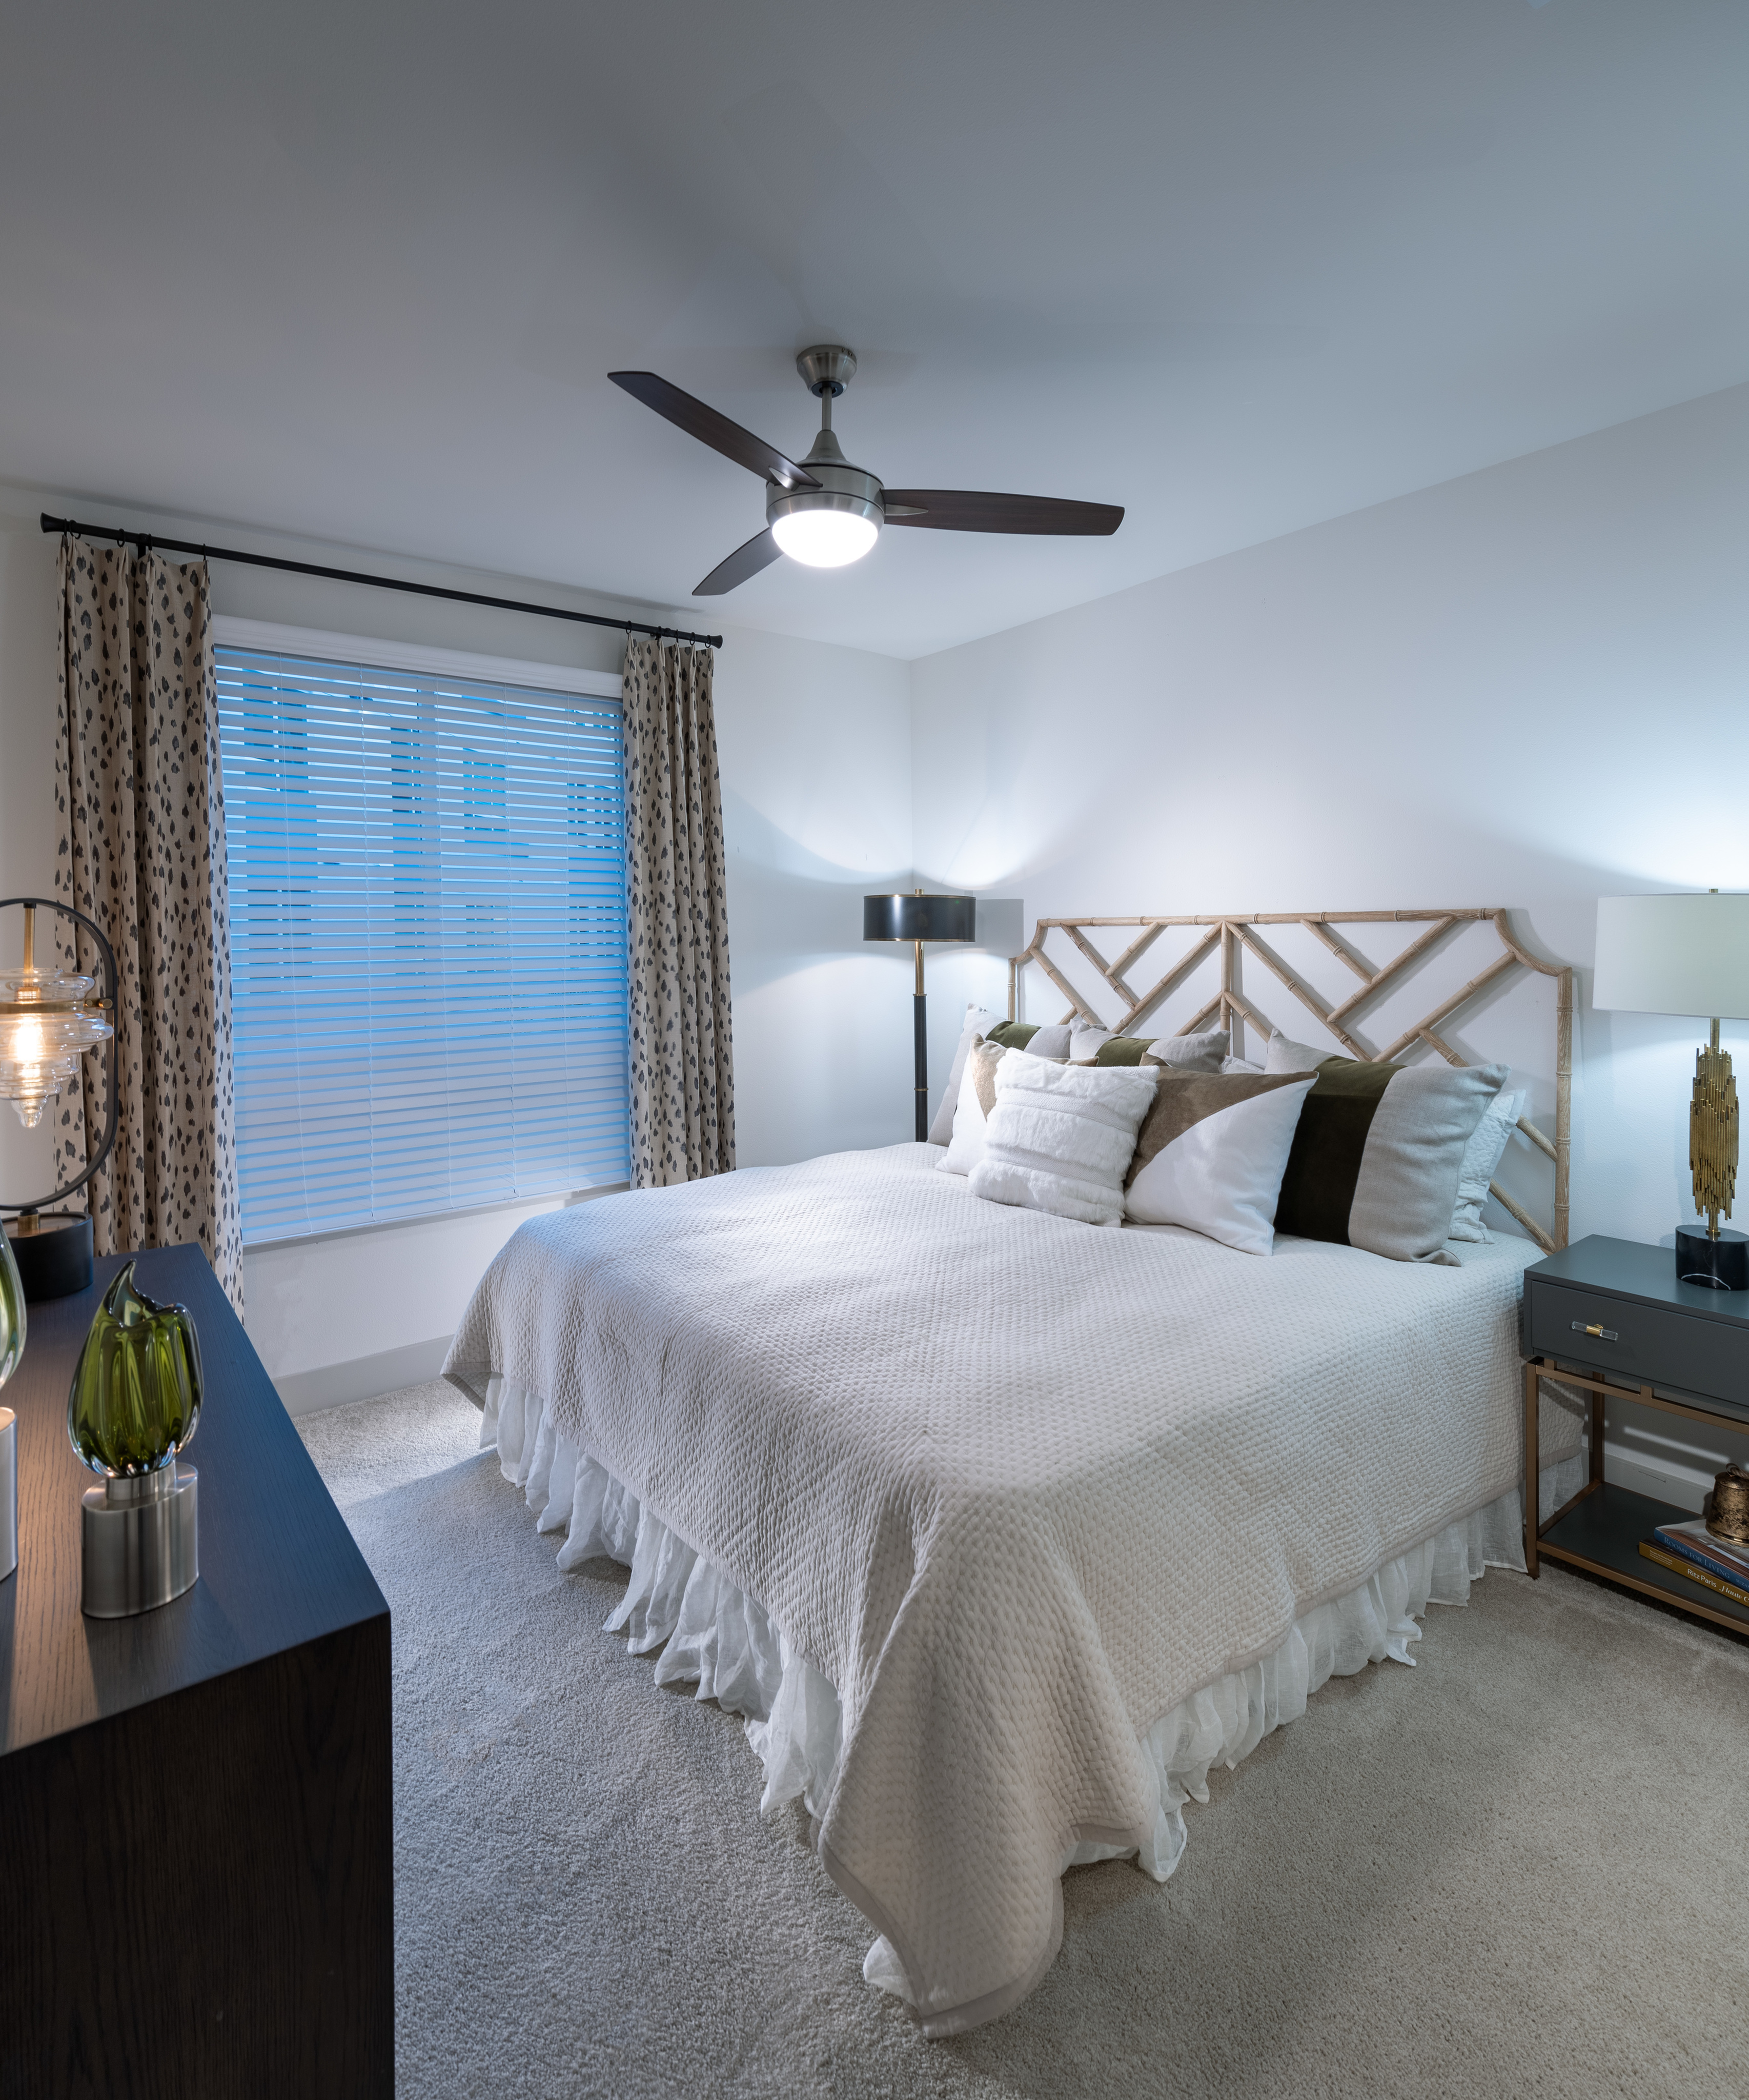 Image of Ample bedrooms that accommodate king-size beds for Hanover Broadway